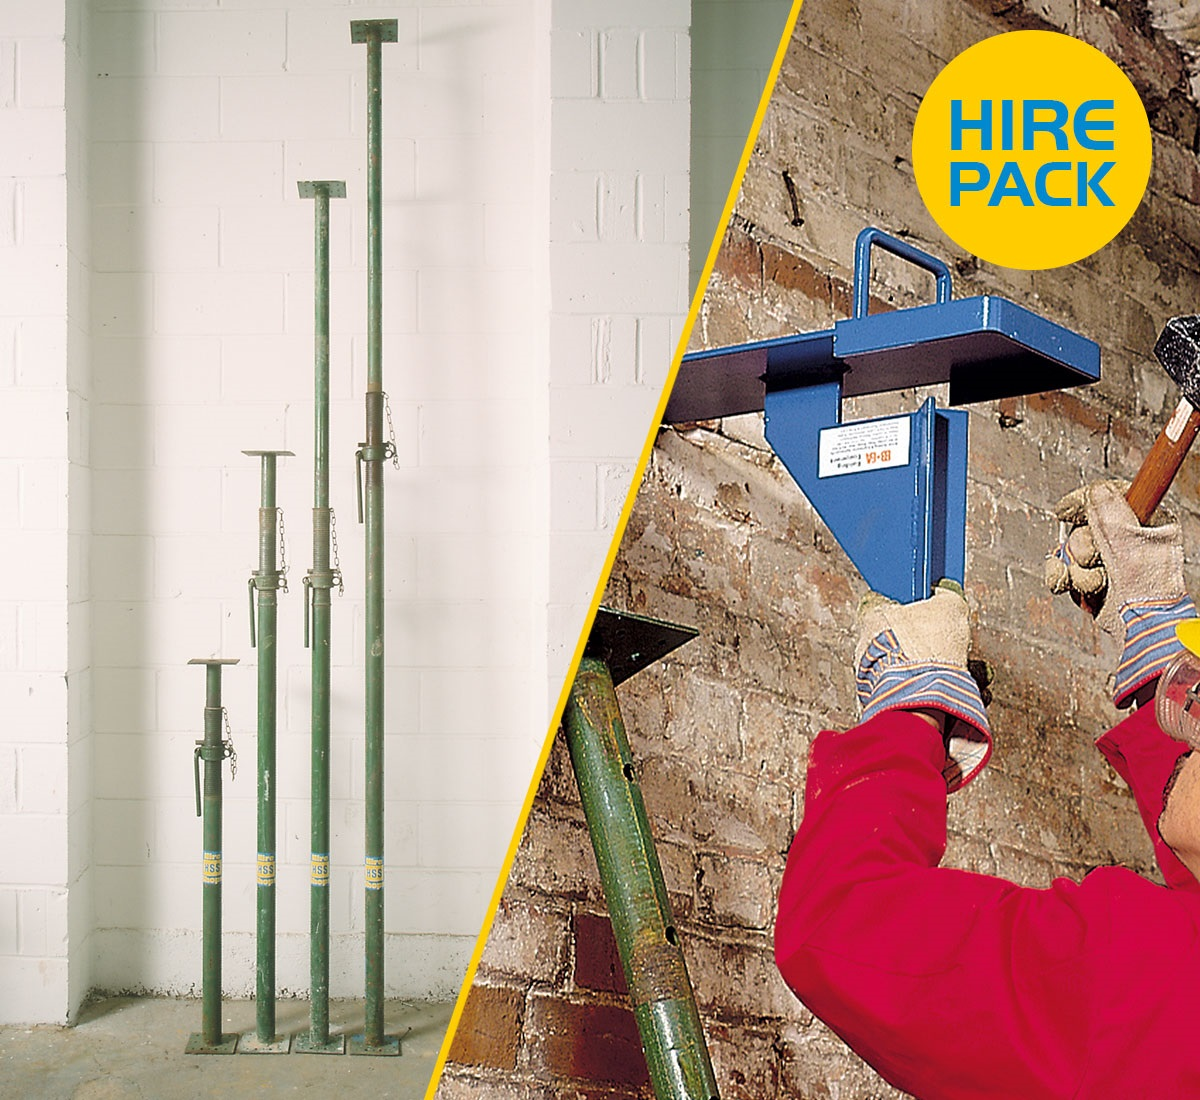 Wall Supports Hire Pack